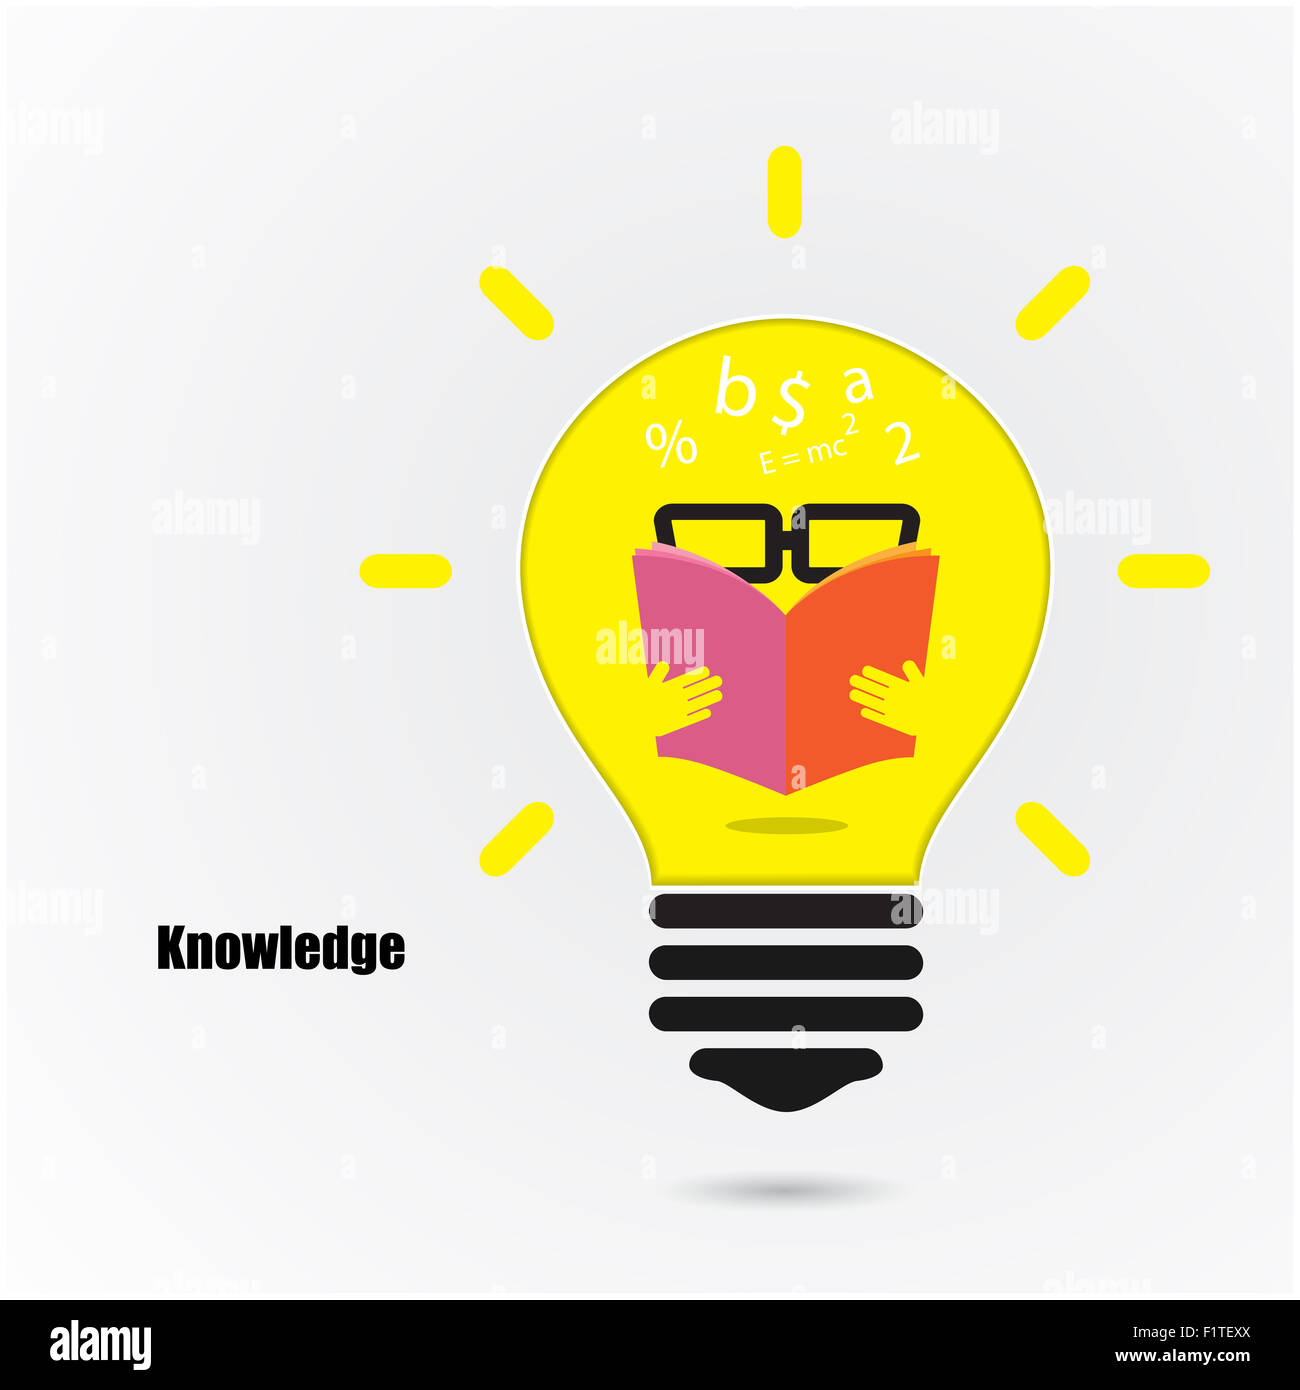 creative light bulb idea concept background design for poster flyer cover brochure education and business idea